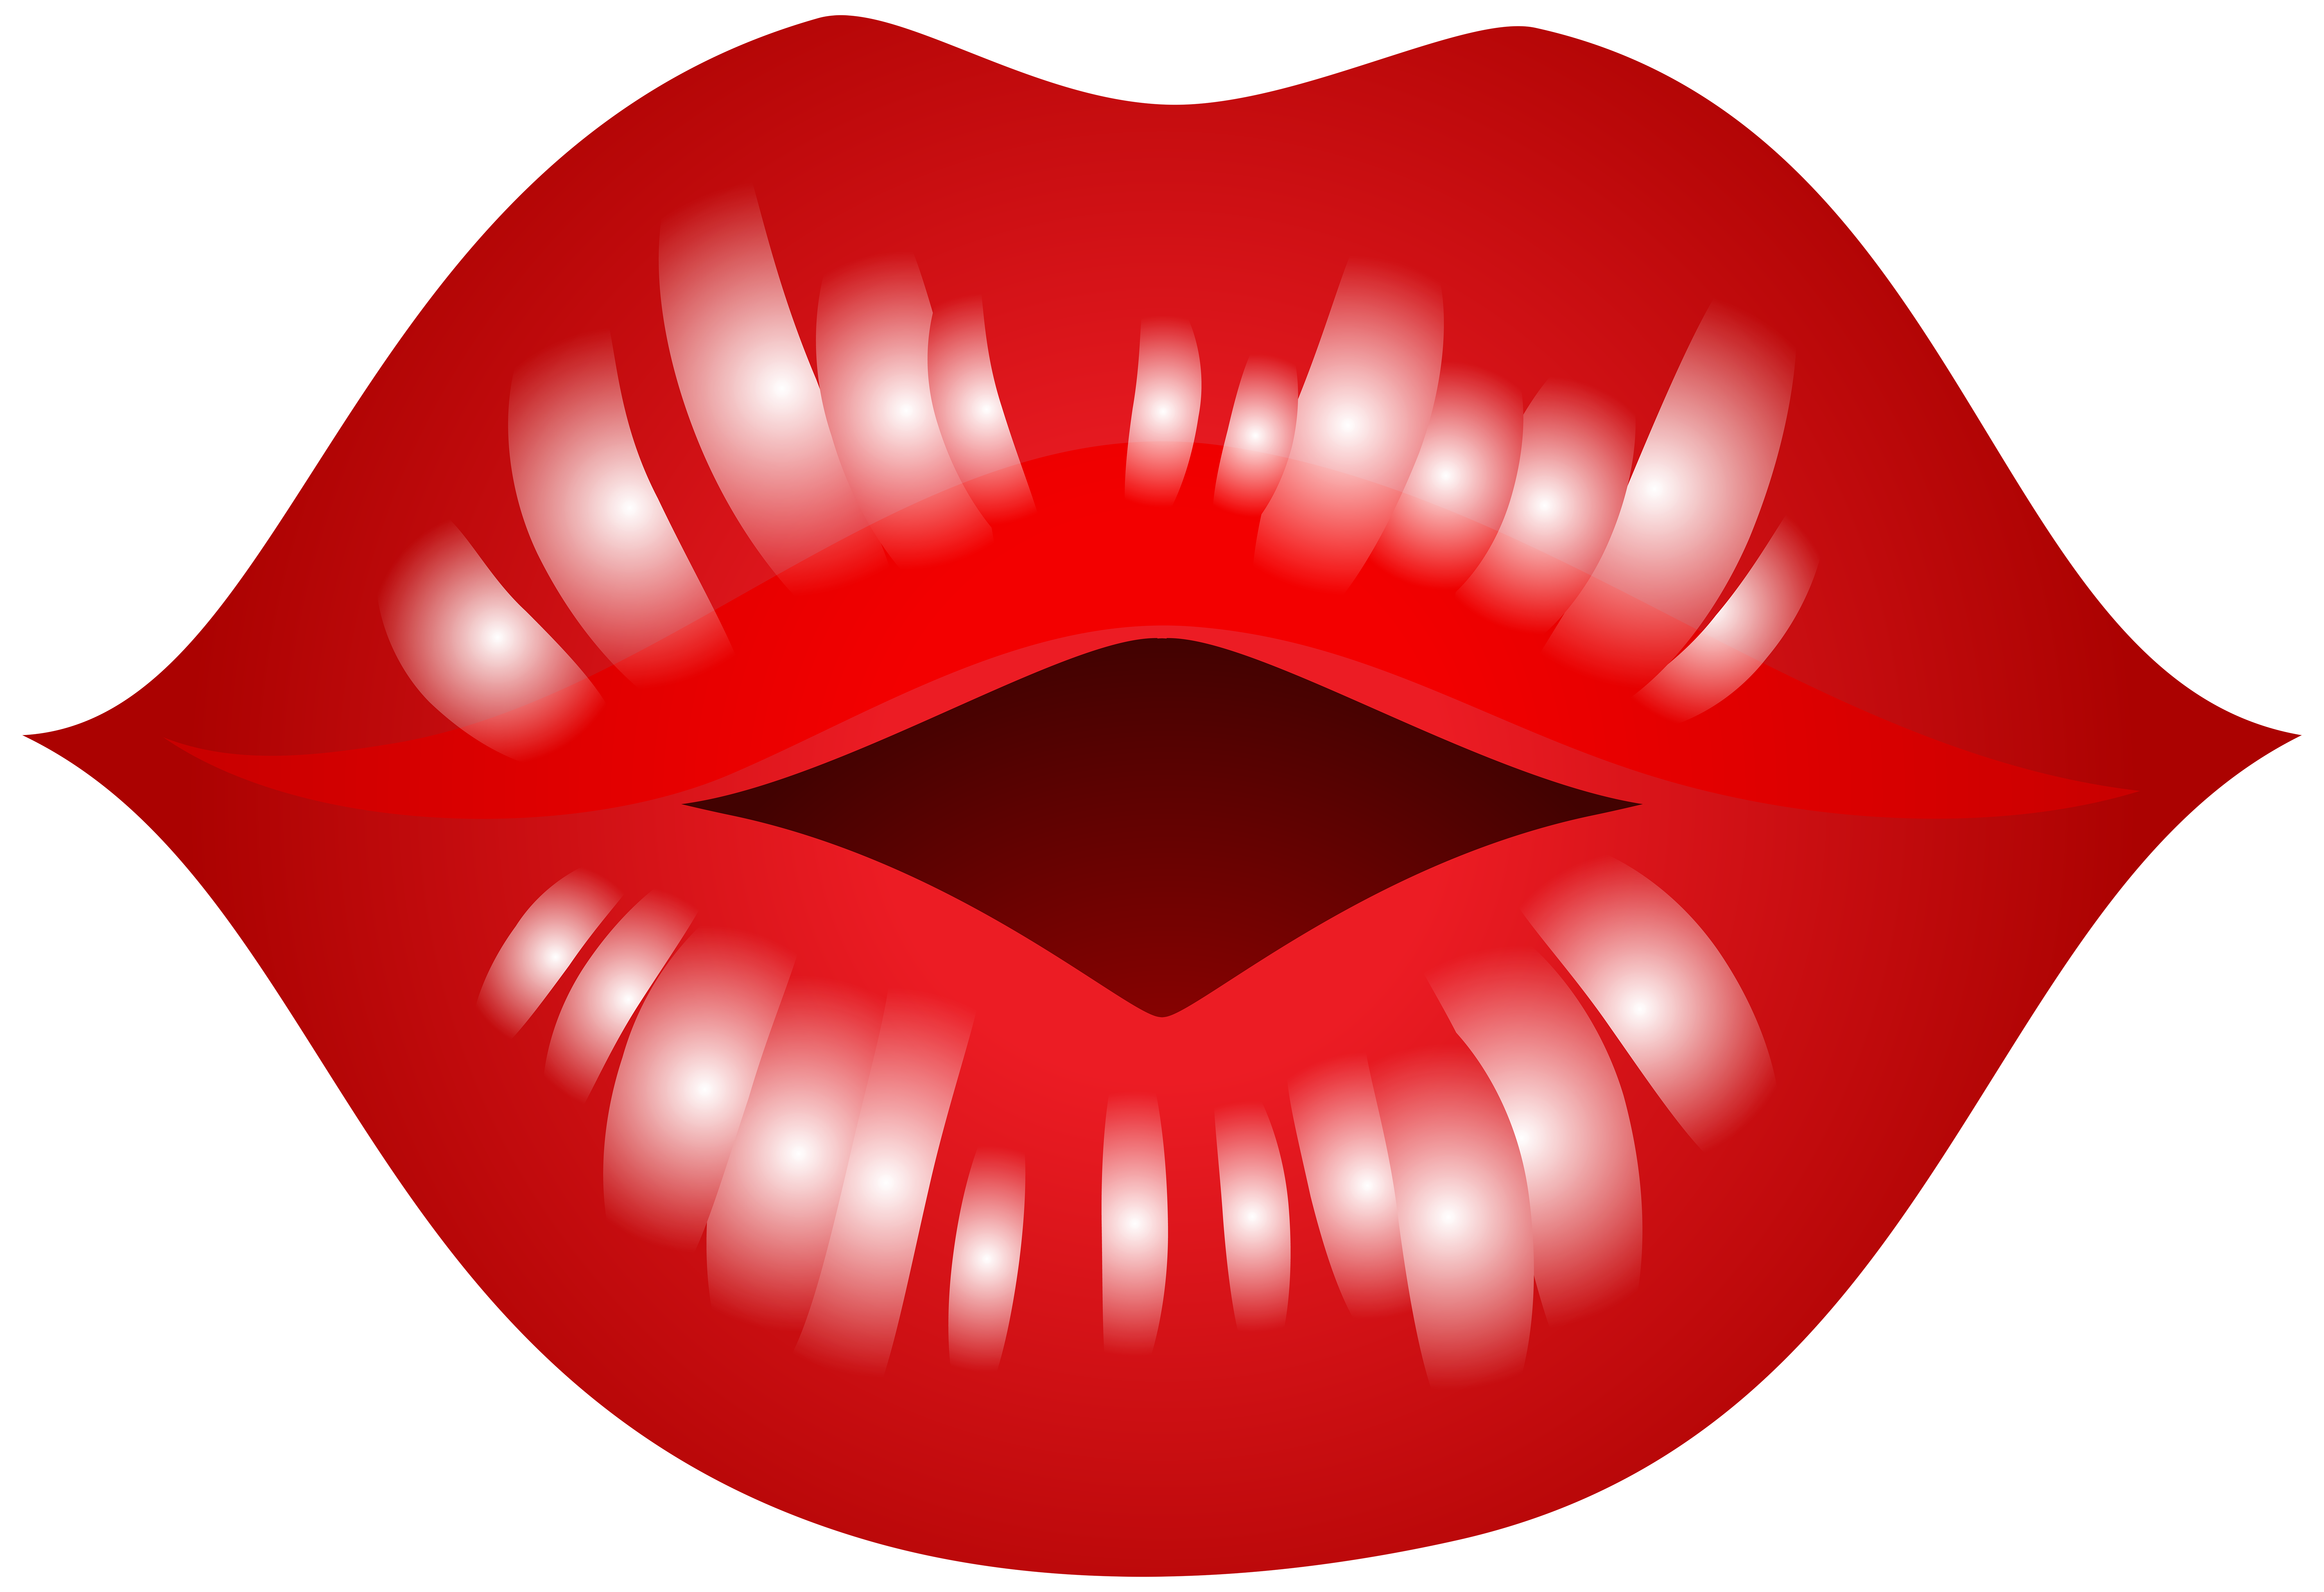 Lady clipart lips. Kiss png clip art